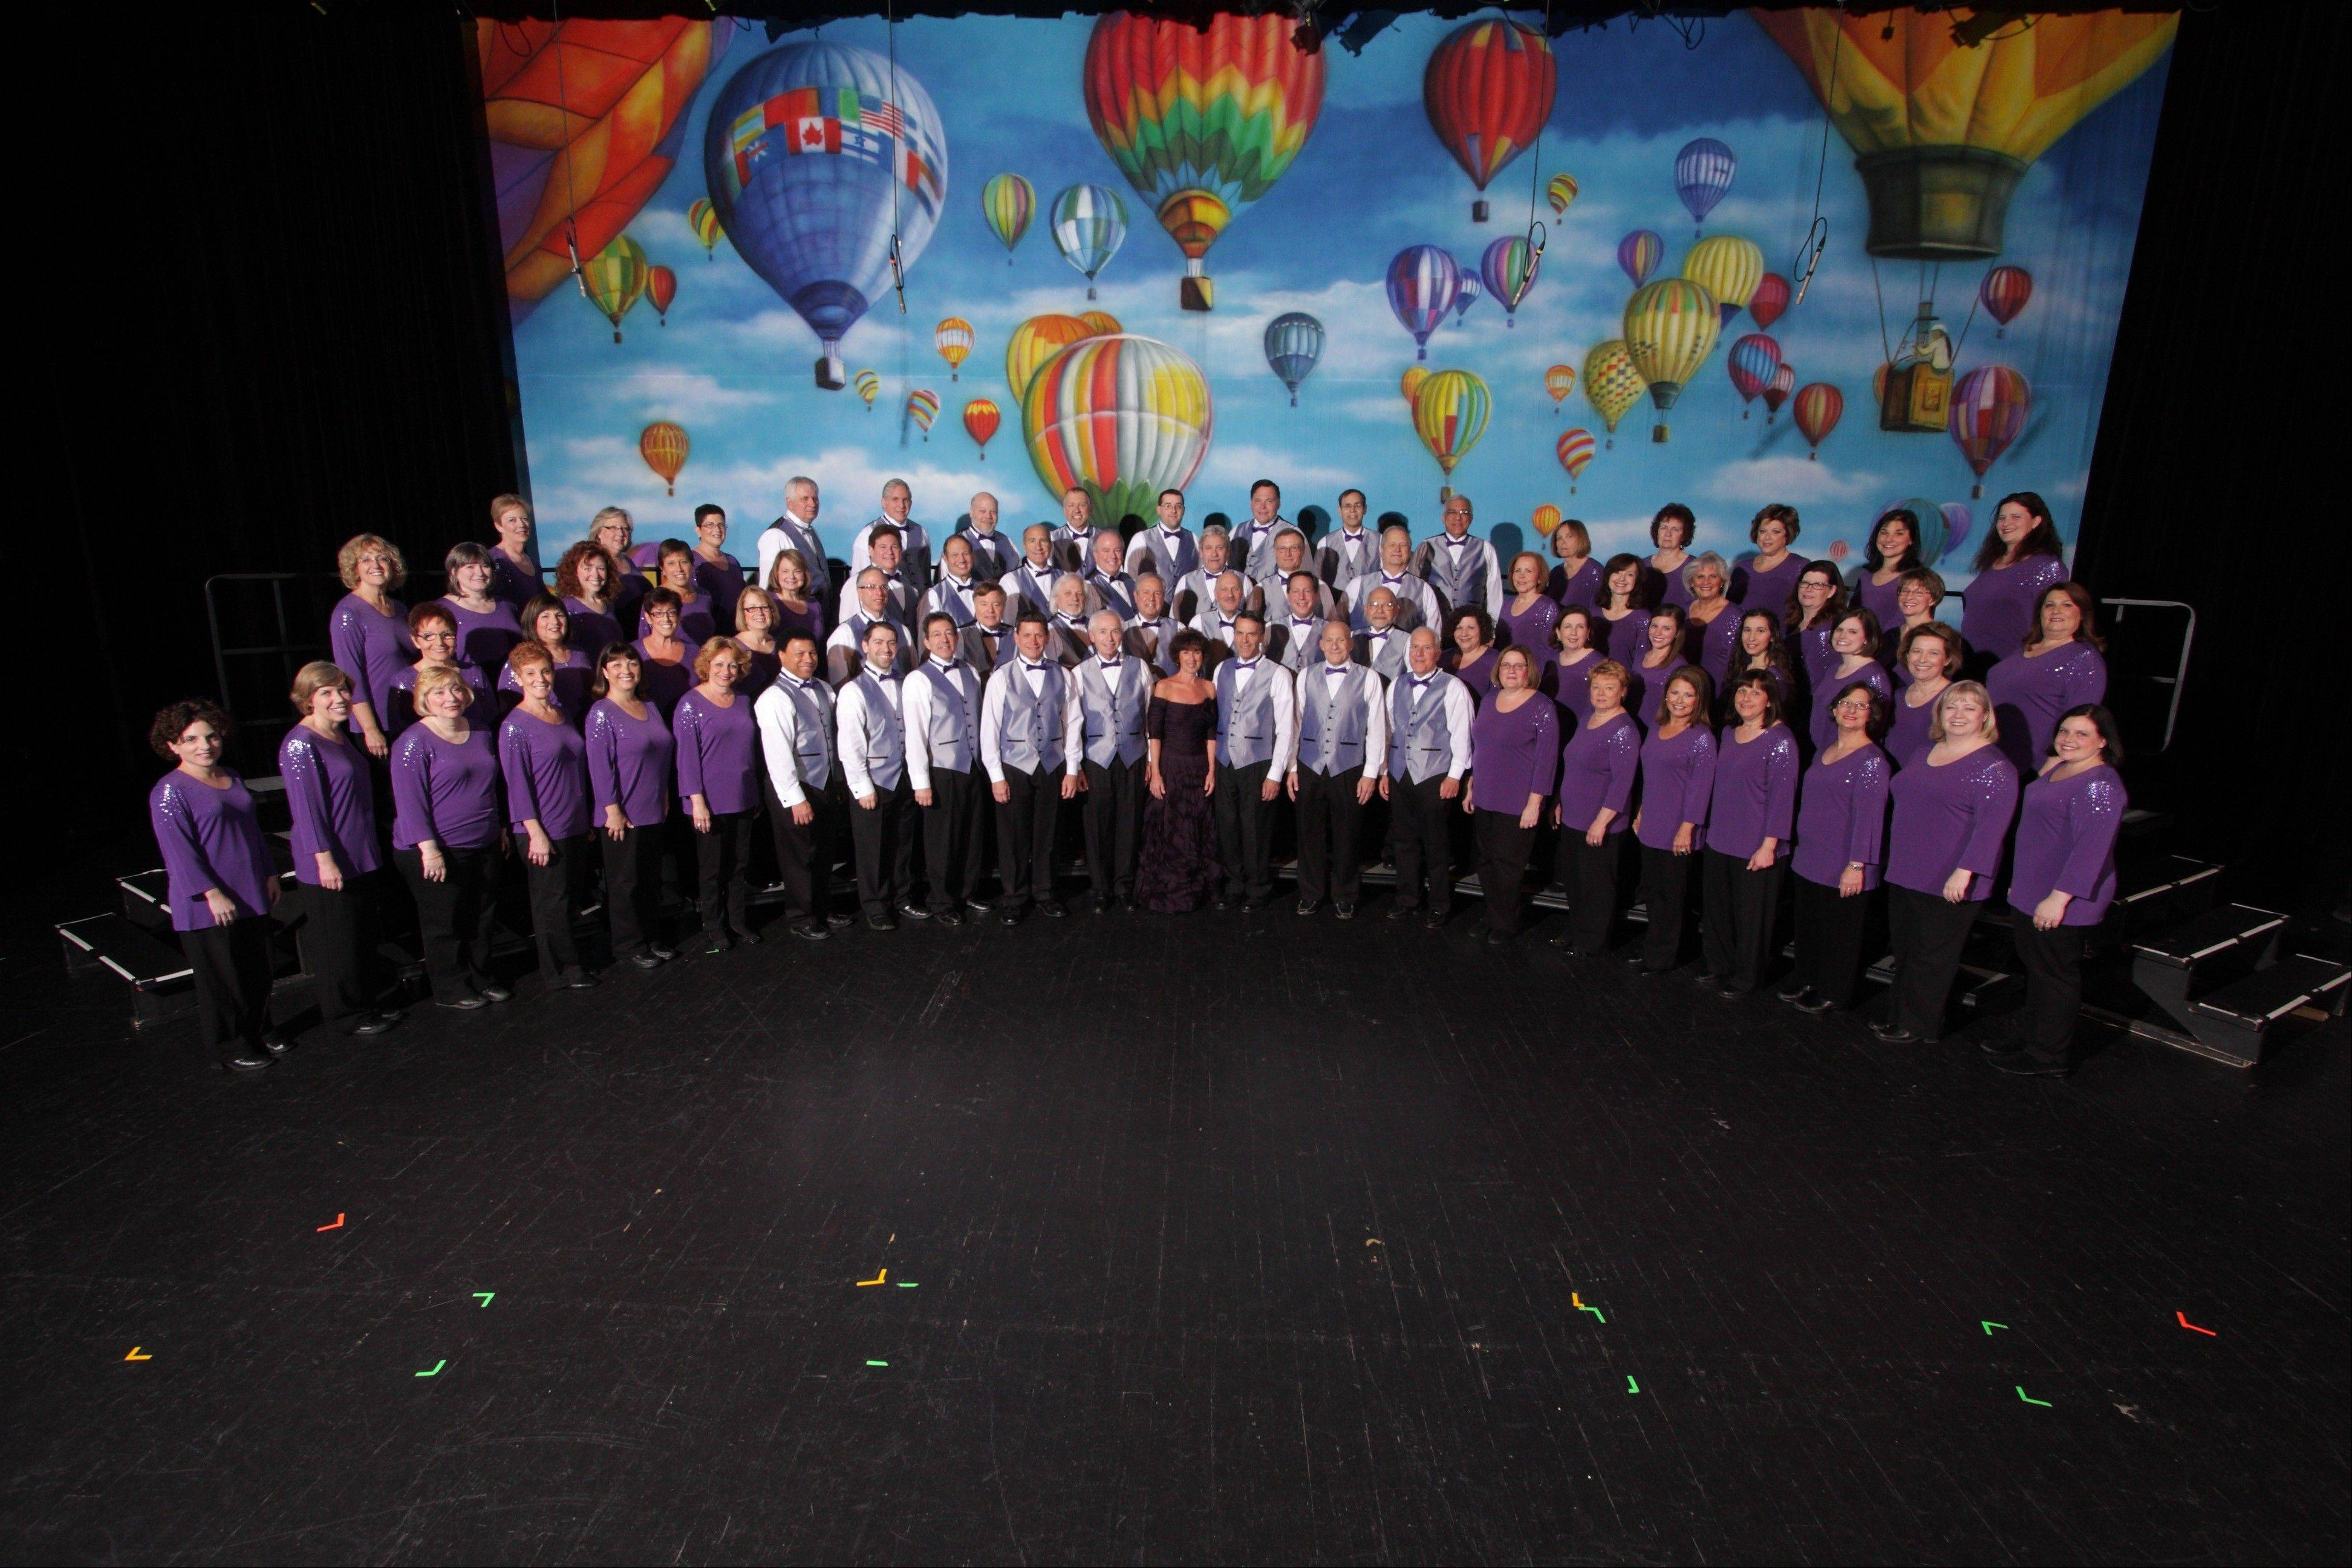 The Buffalo Grove Park District's BG Singers will celebrate their 20th anniversary performance at 7:30 p.m. Saturday, Sept. 8, and 3 p.m. Sunday, Sept. 9, at the Stevenson High School Performing Arts Center.